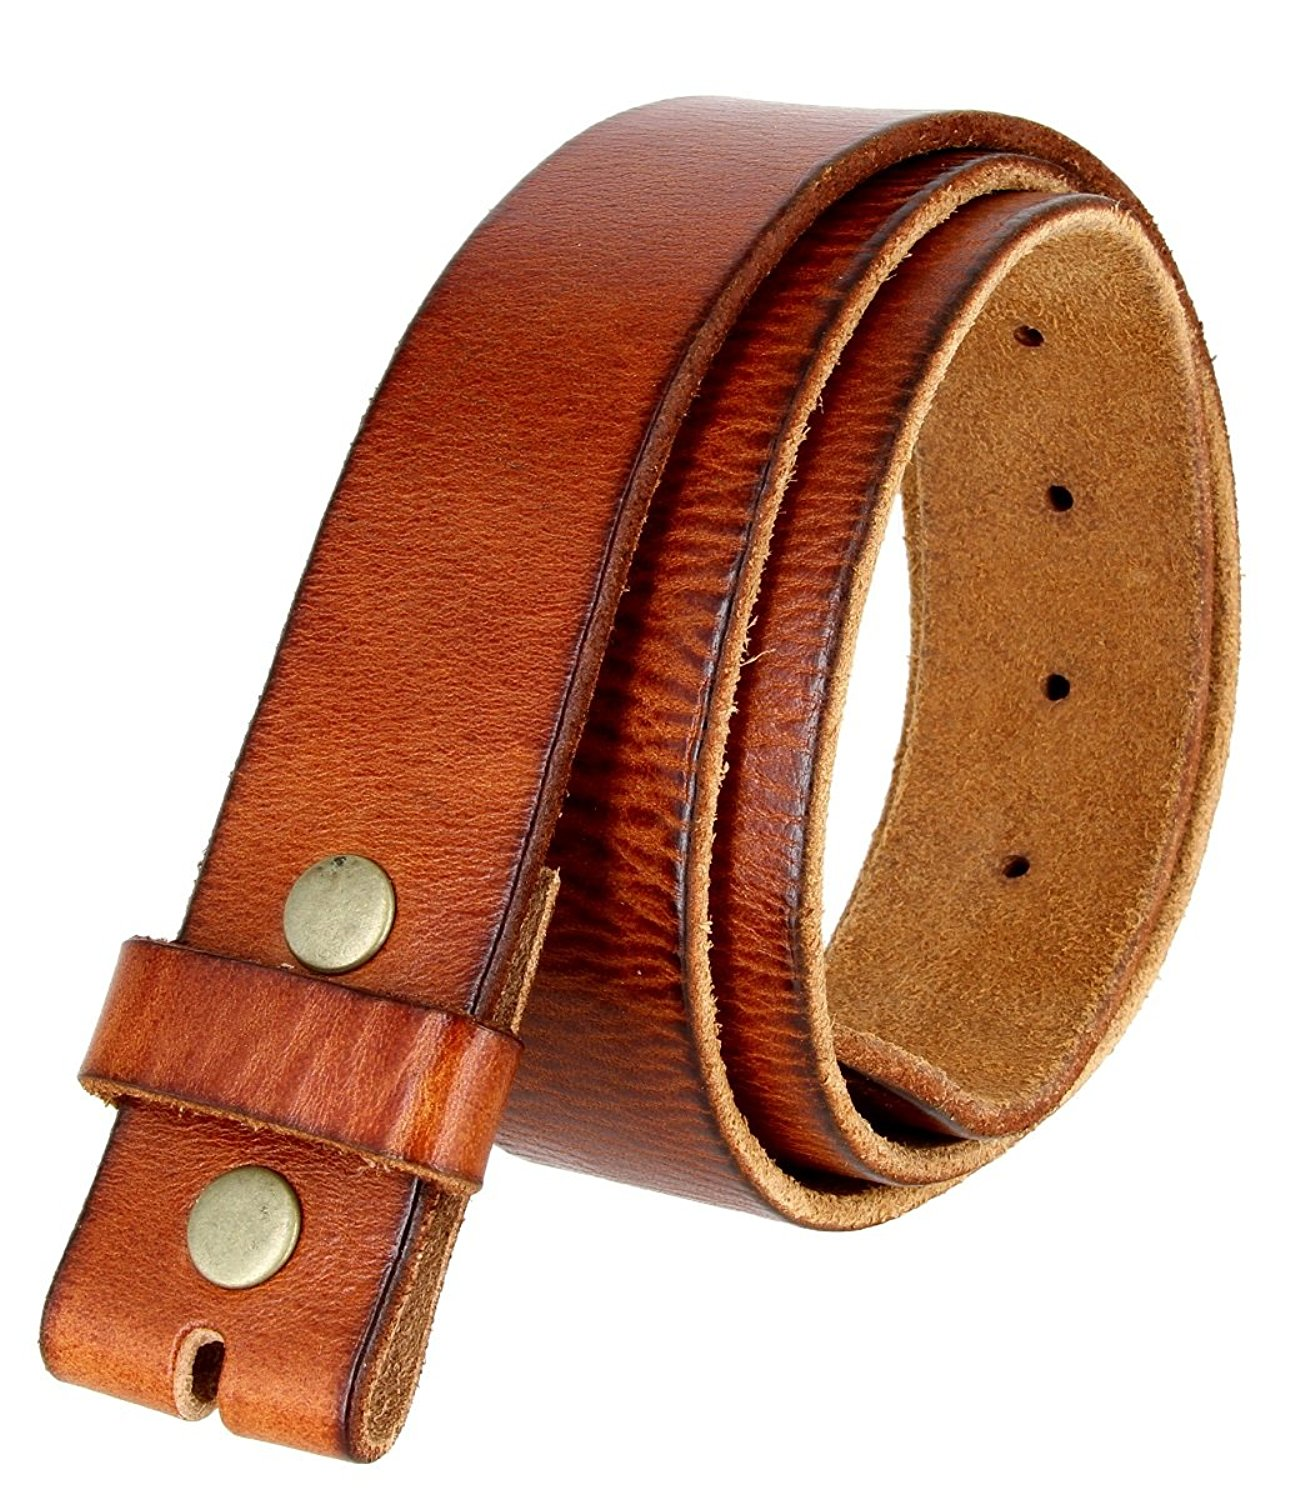 "BS-40 Vintage Full Grain One Piece 100% Leather Style Snap on Belt Strap 1 1/2"" Wide"